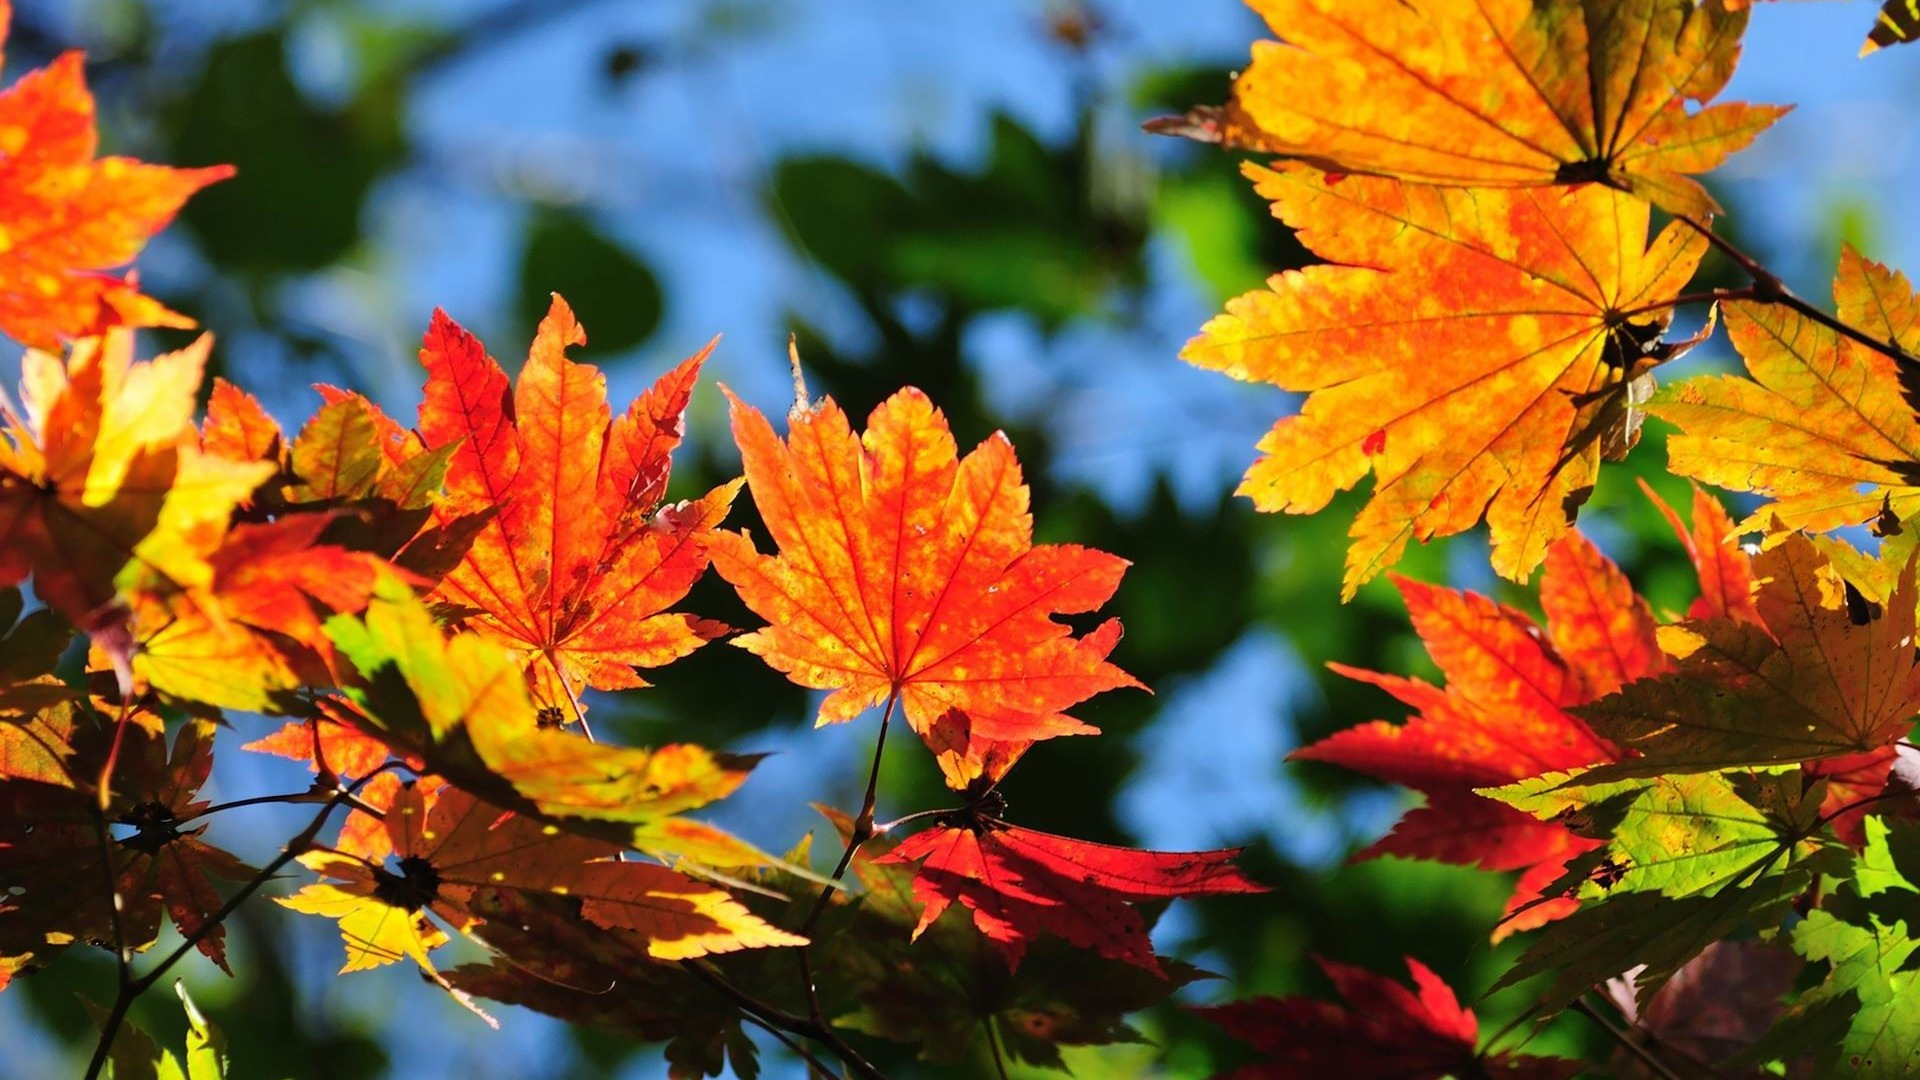 Windows 81 Theme HD Wallpapers Beautiful Autumn Leaves 8